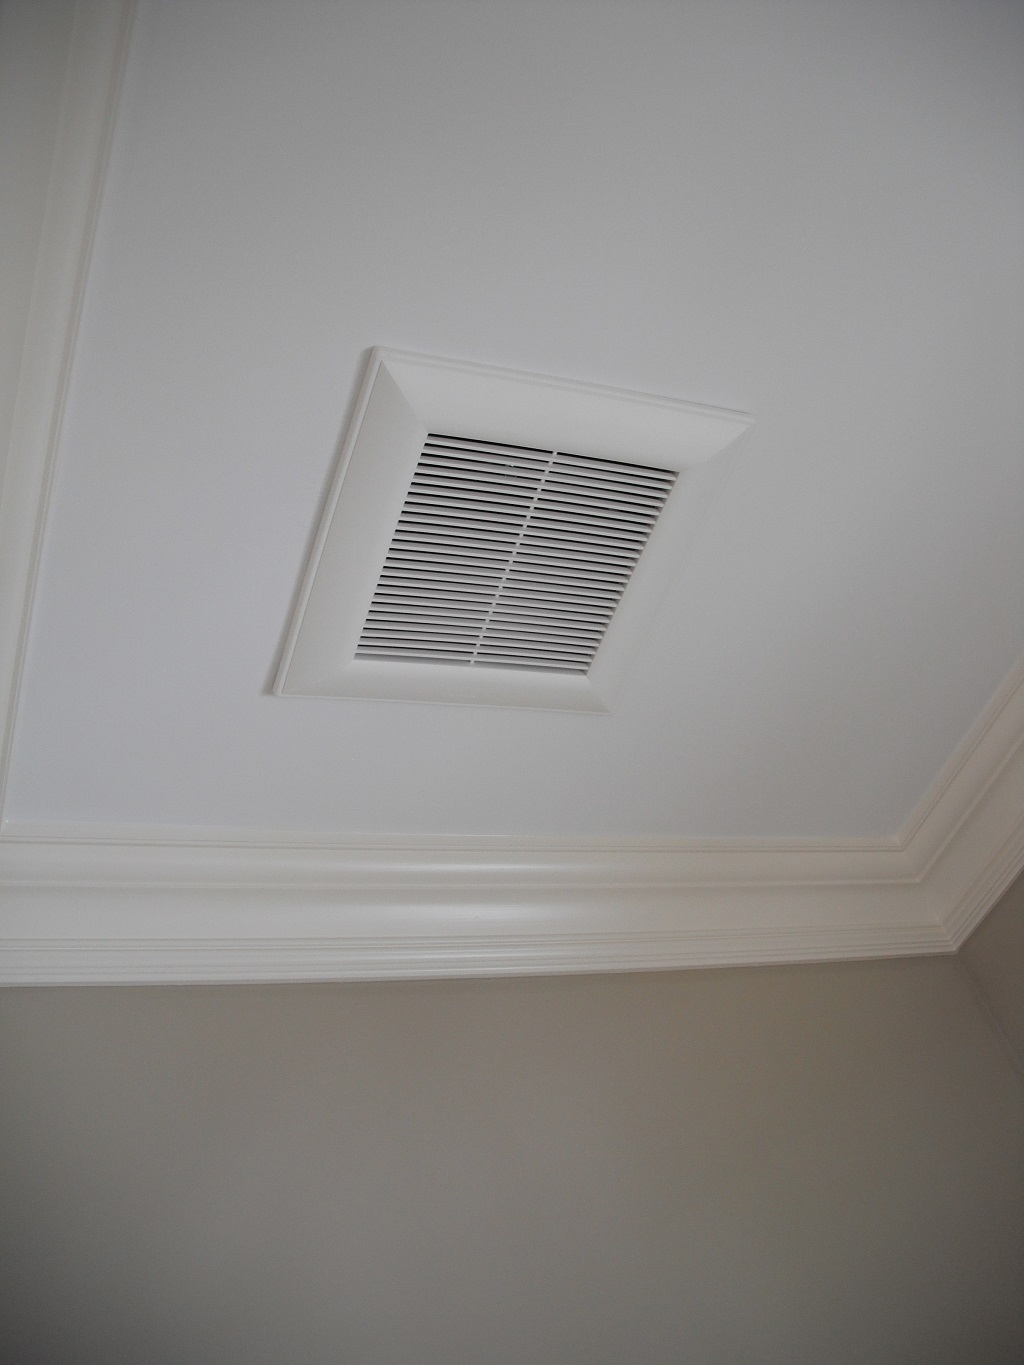 Short hills nj electrical contractors and electrical services for Bathroom ventilation installation